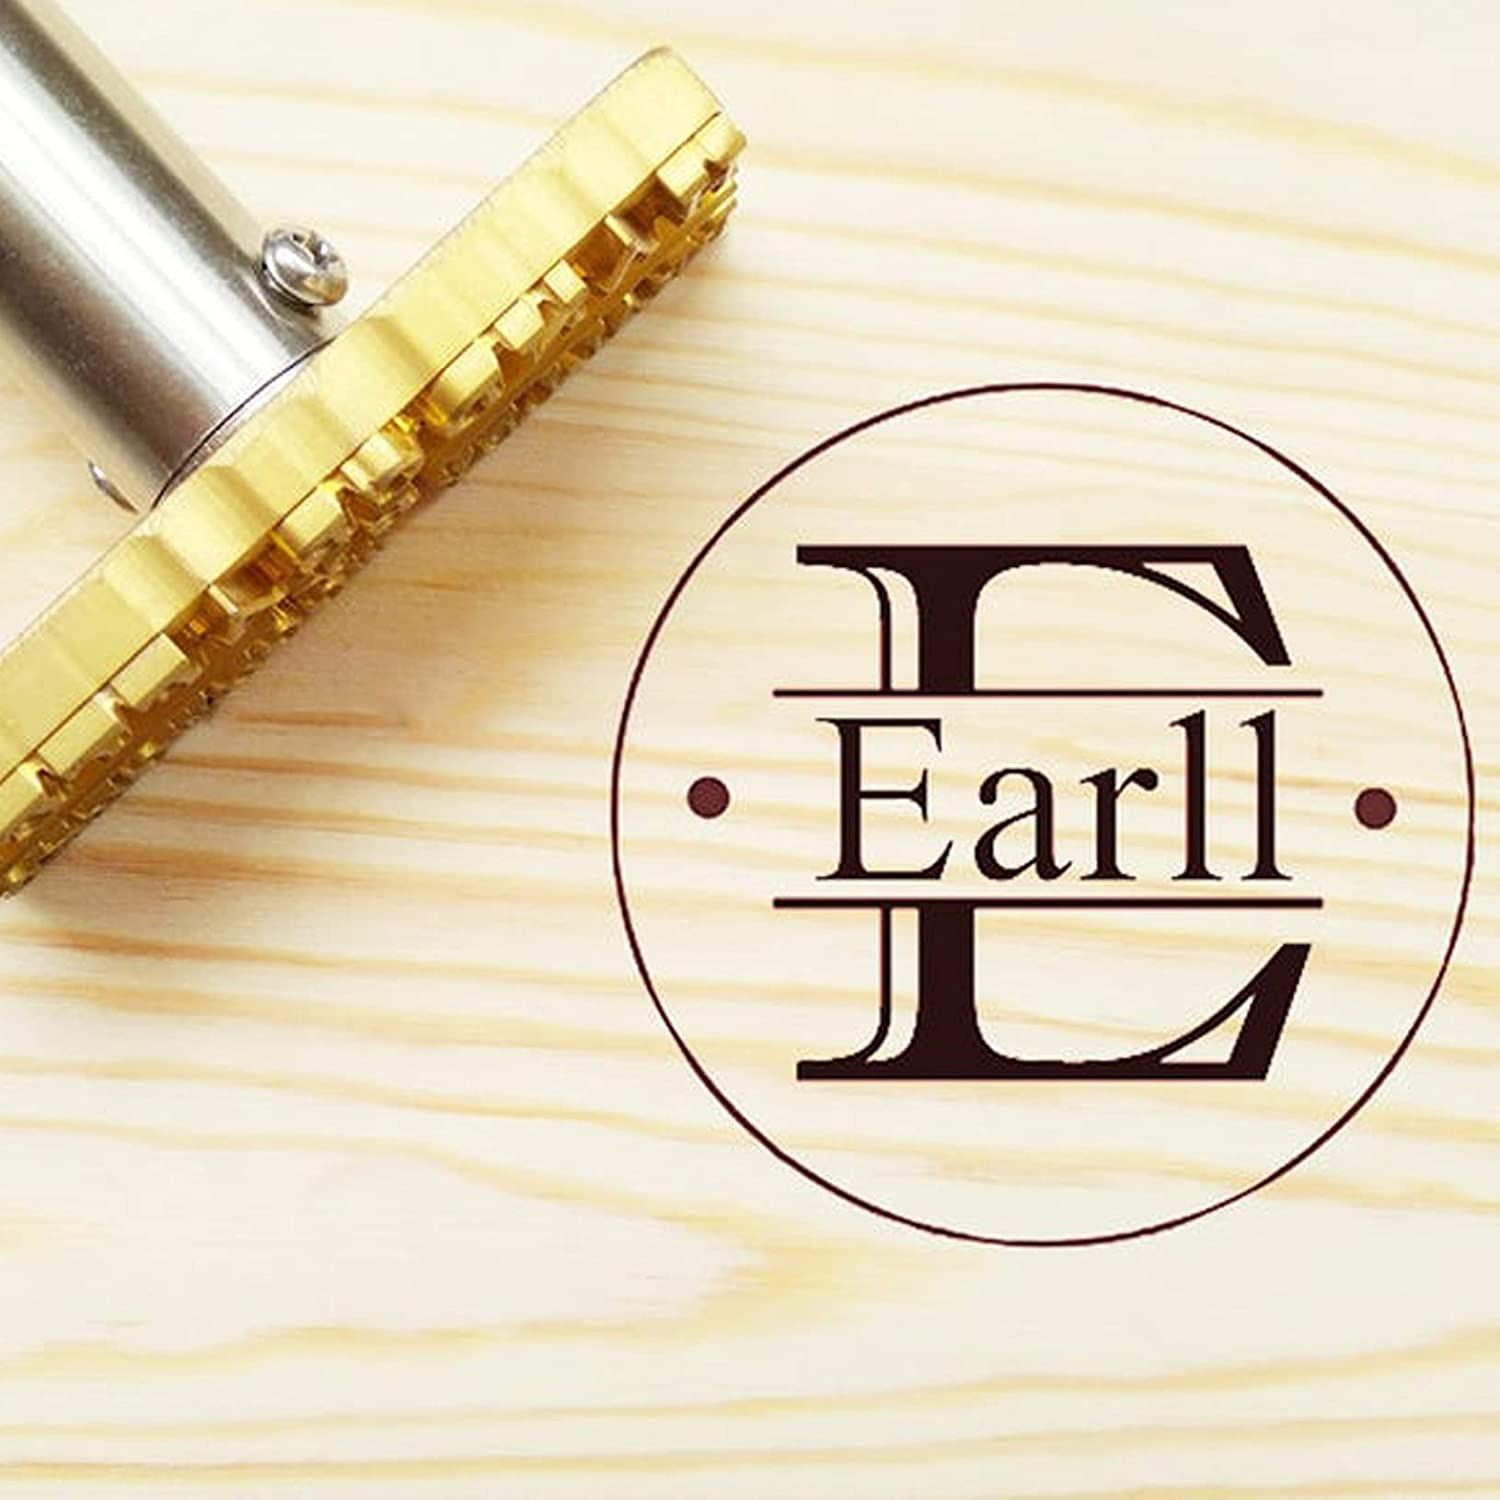 Custom Limited time for free shipping Electric Branding Iron for Lea Detroit Mall Meat Woodworking Wood Food